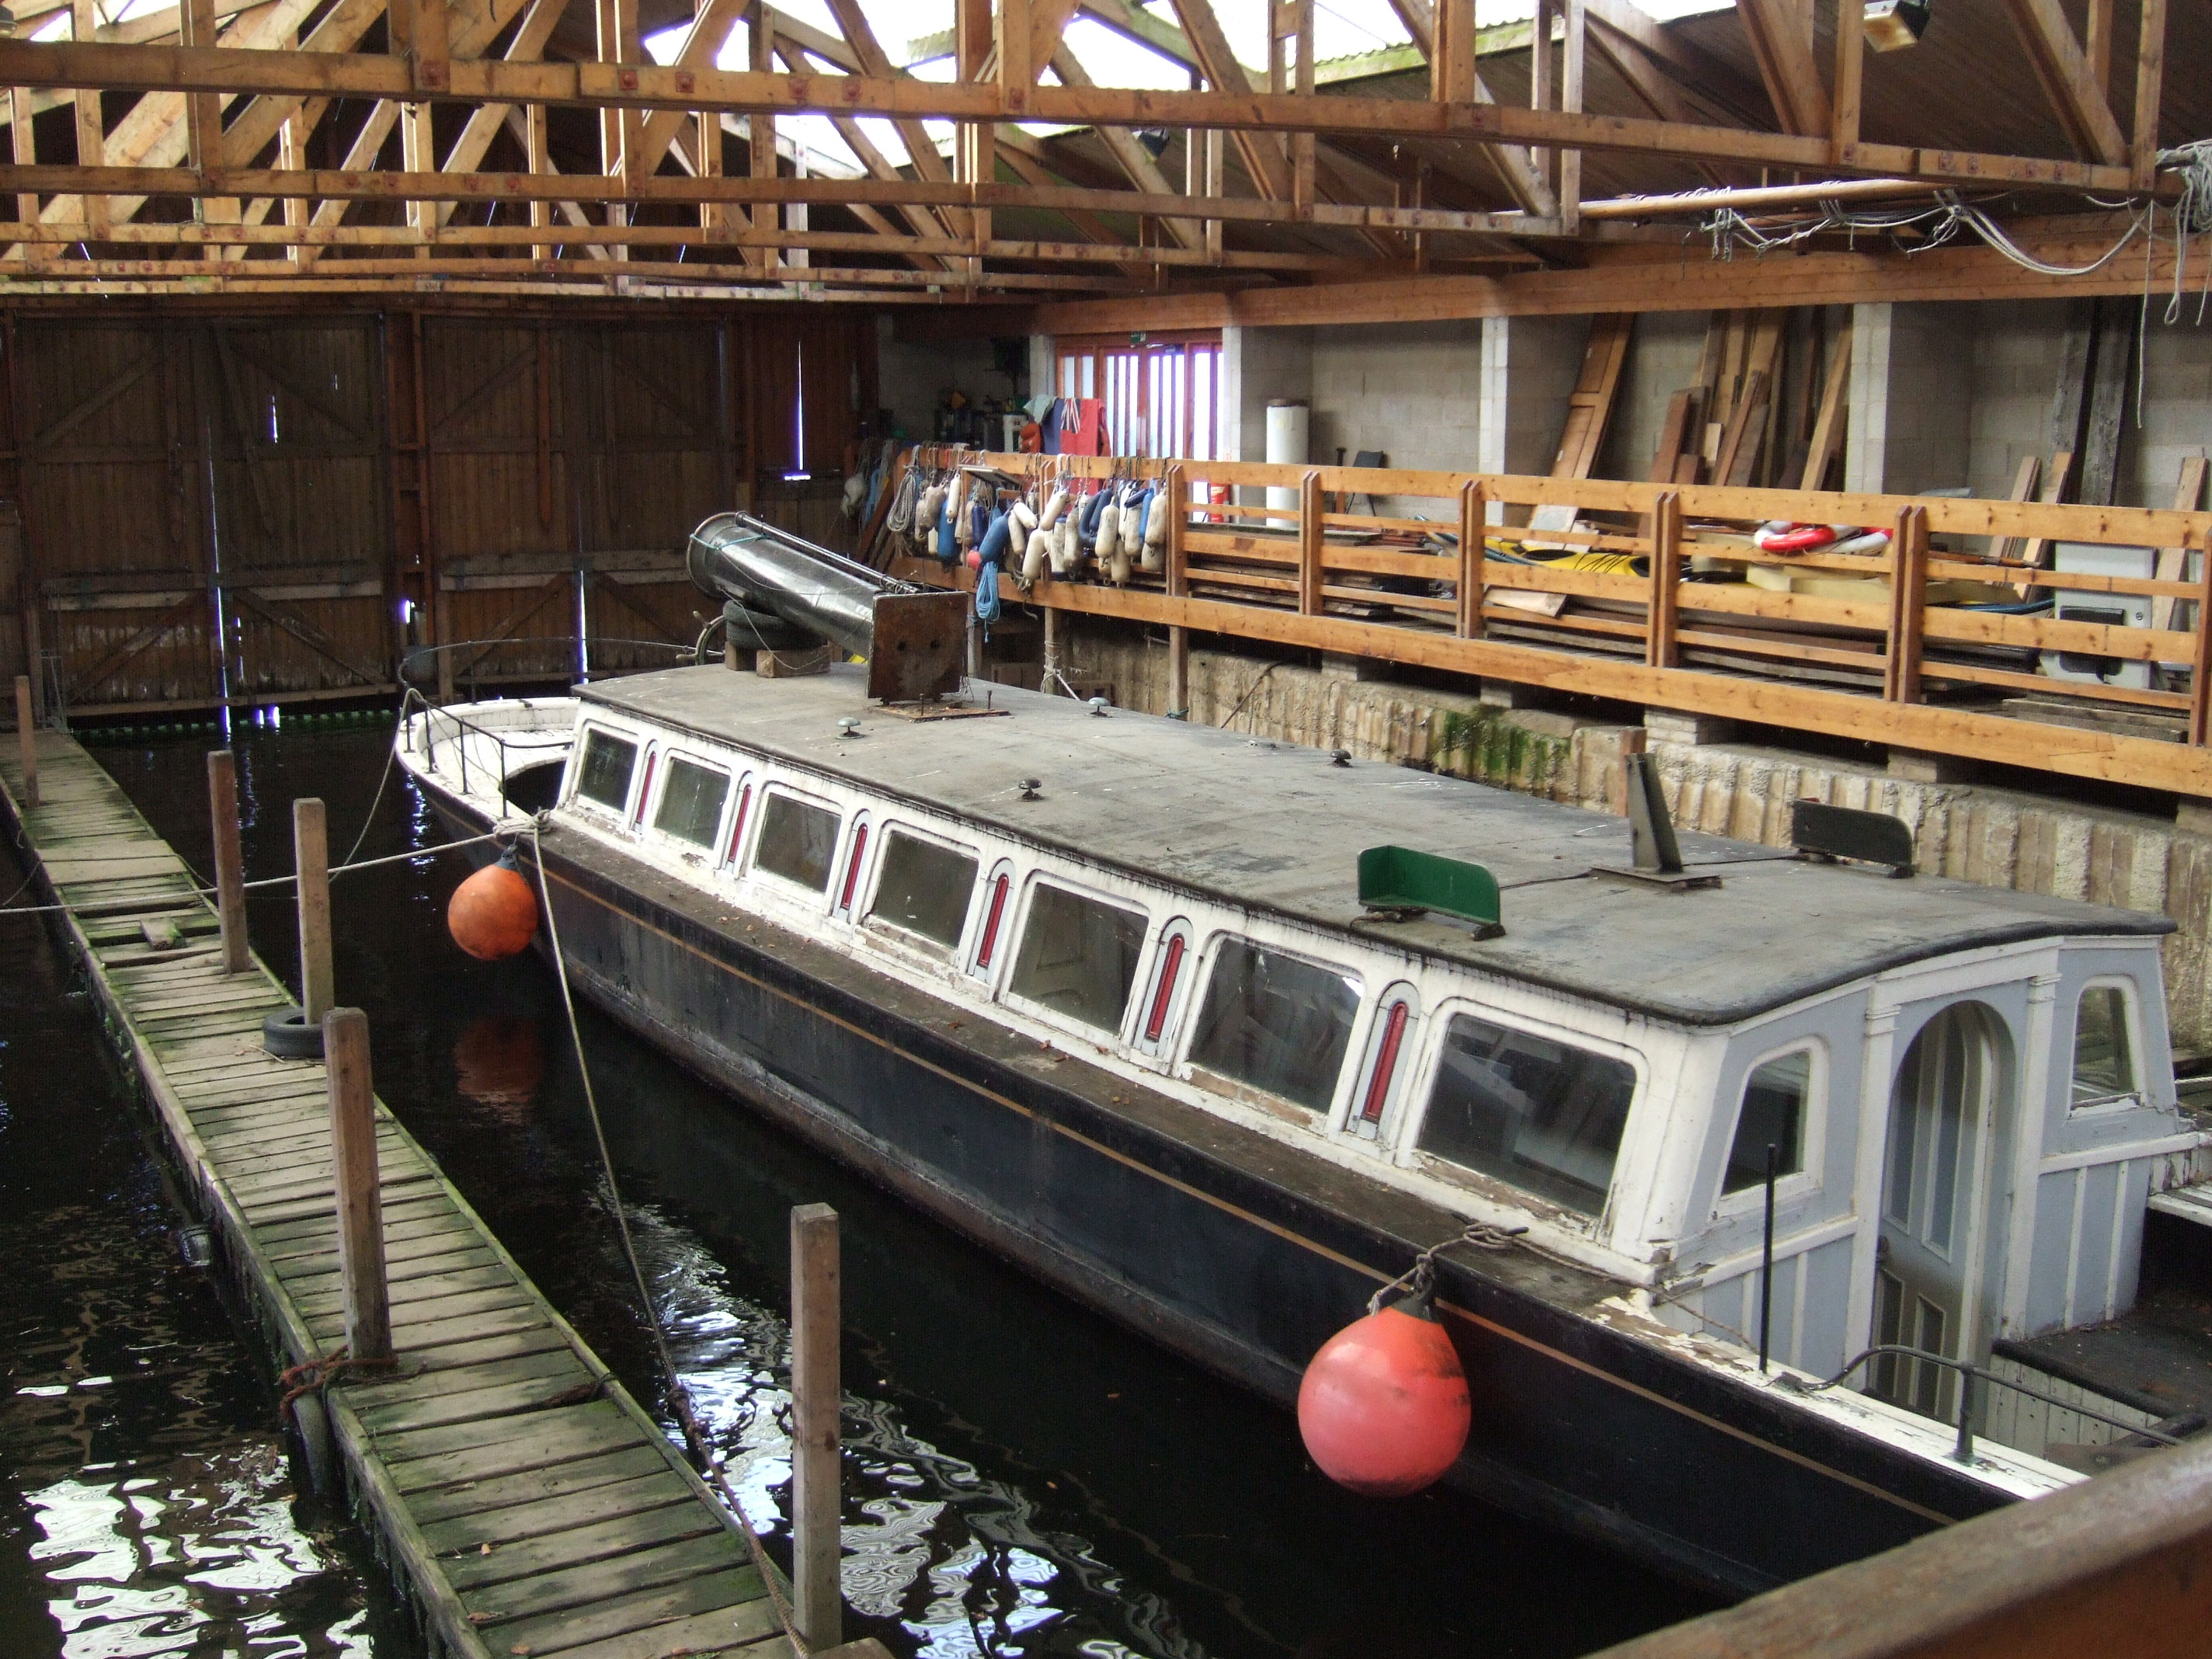 Esperance at the Windermere Steamboat Museum